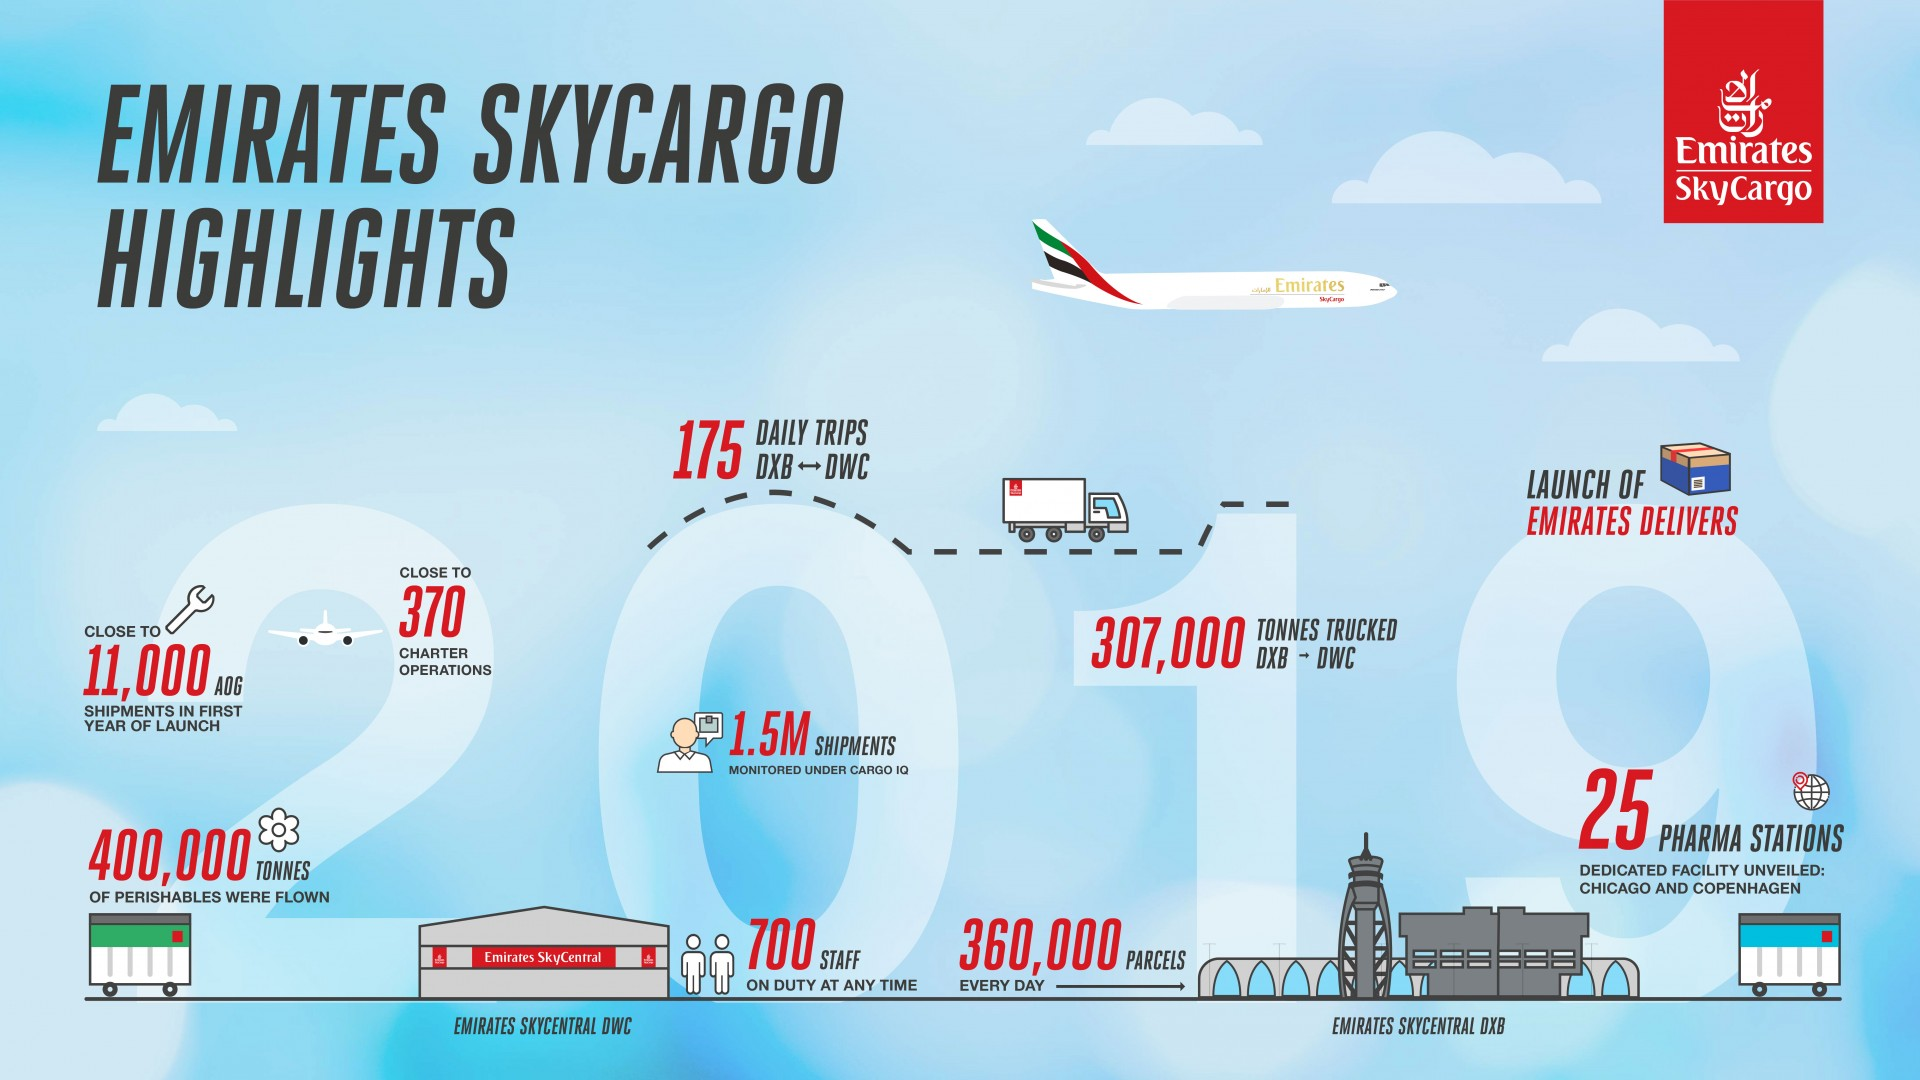 Emirates SkyCargo 2019 Highlights: Focus on Specialised Products and Fit for Purpose Infrastructure Infographic